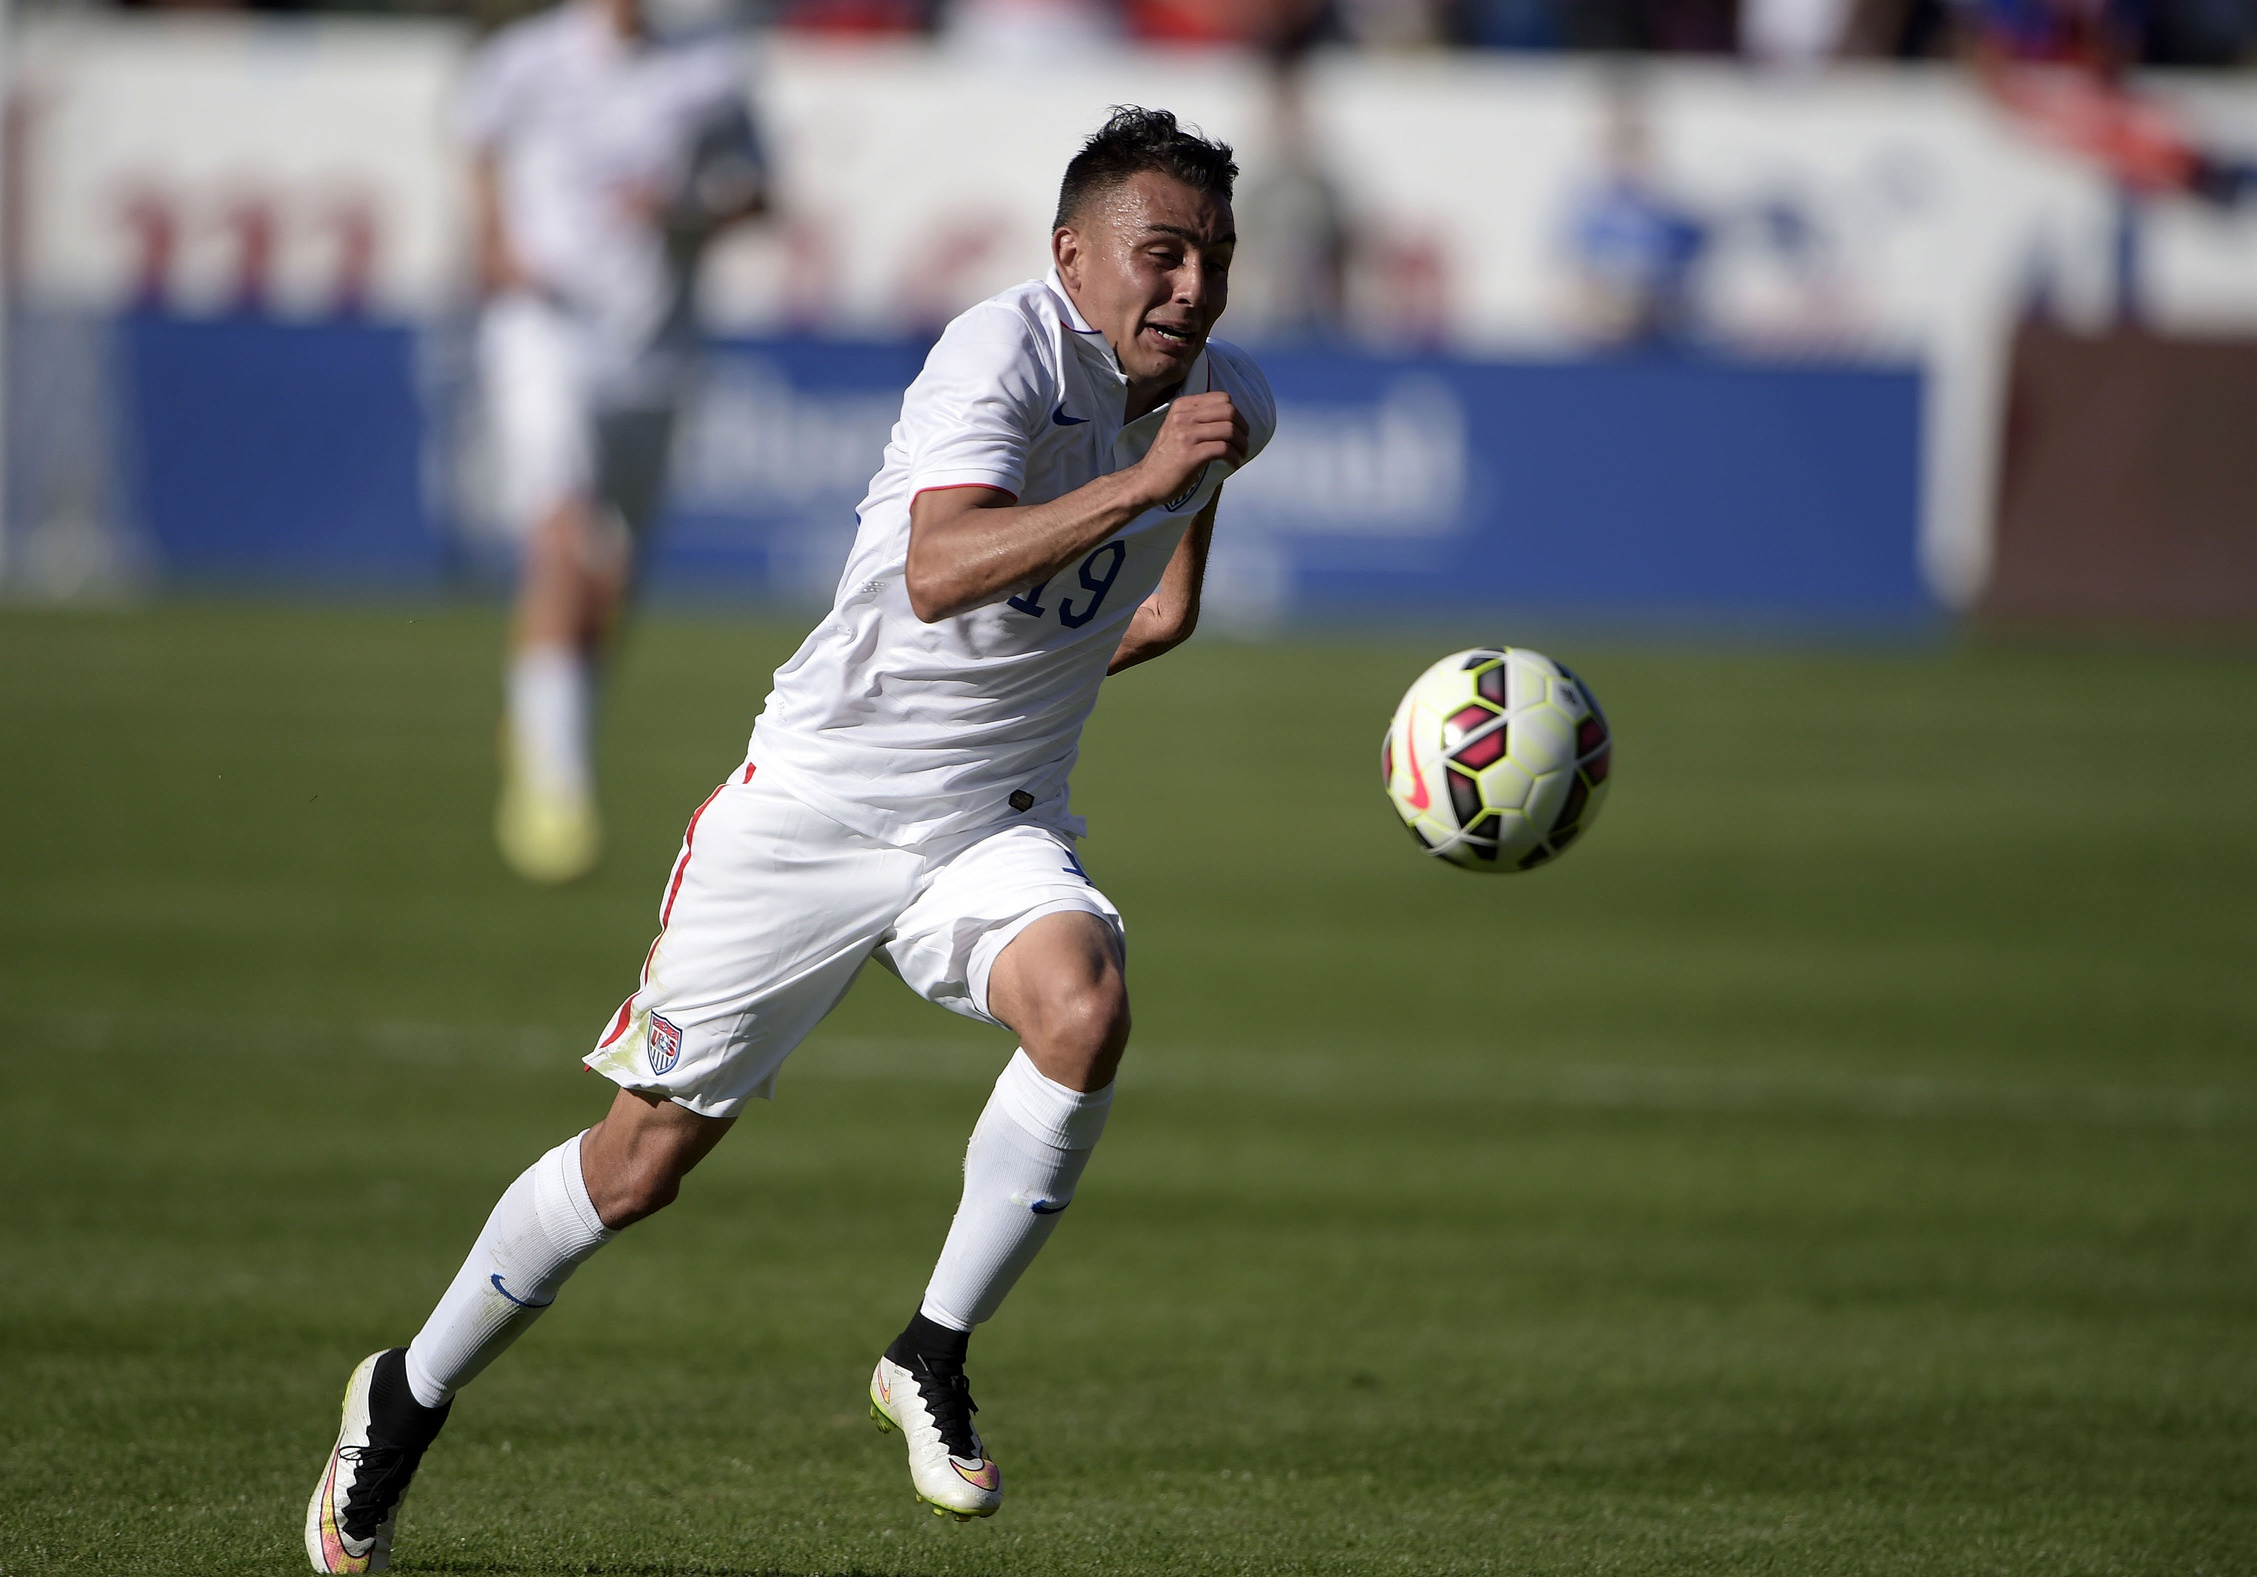 Who will be the next Miguel Ibarra from NASL to play for USMNT?